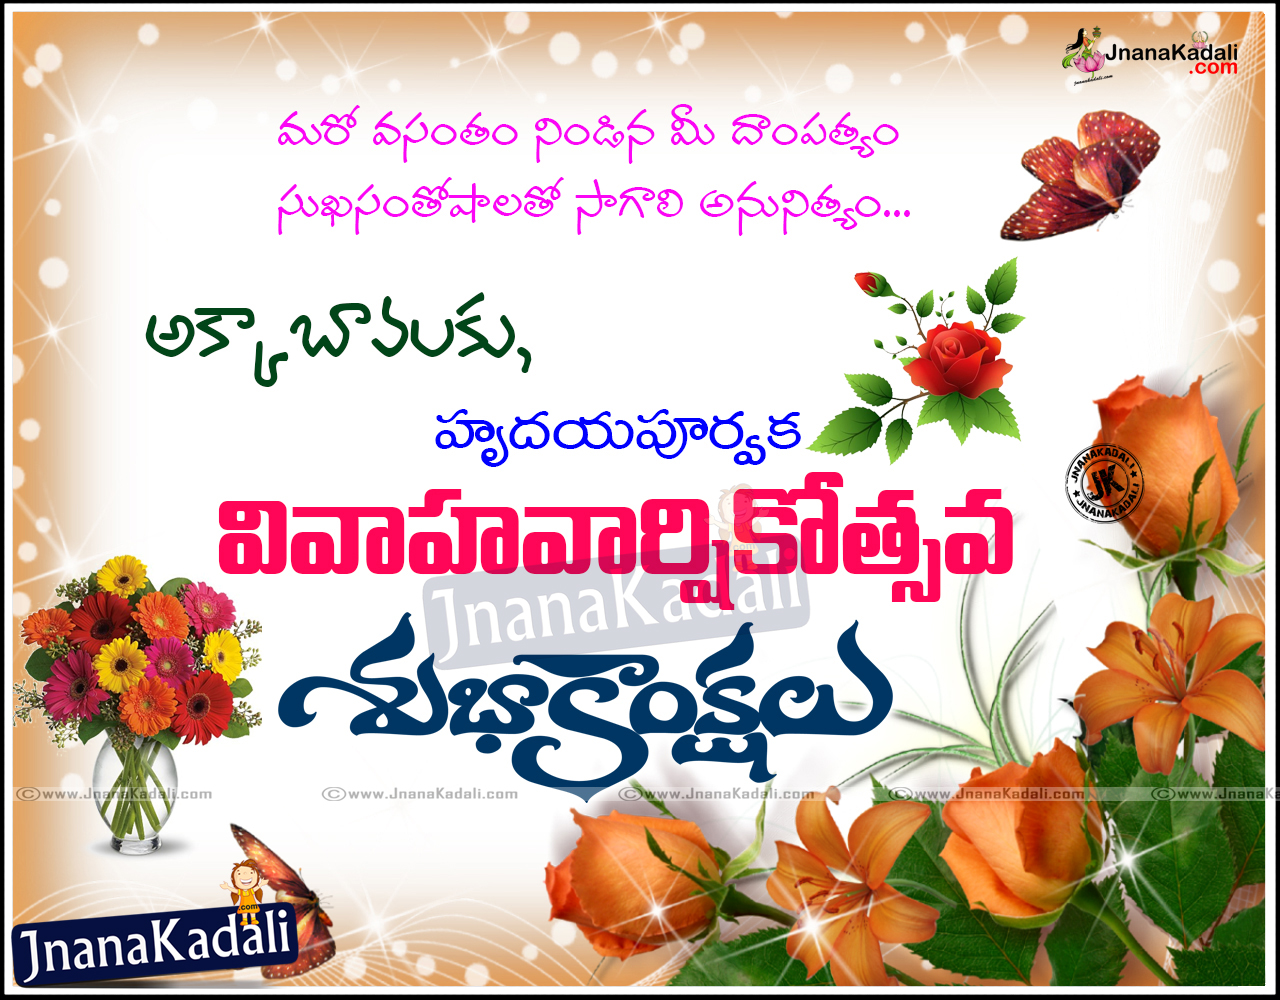 Marriage Day Hd Telugu Kavithalu Wallpapers For Sister Jnana Kadali Com Telugu Quotes English Quotes Hindi Quotes Tamil Quotes Dharmasandehalu